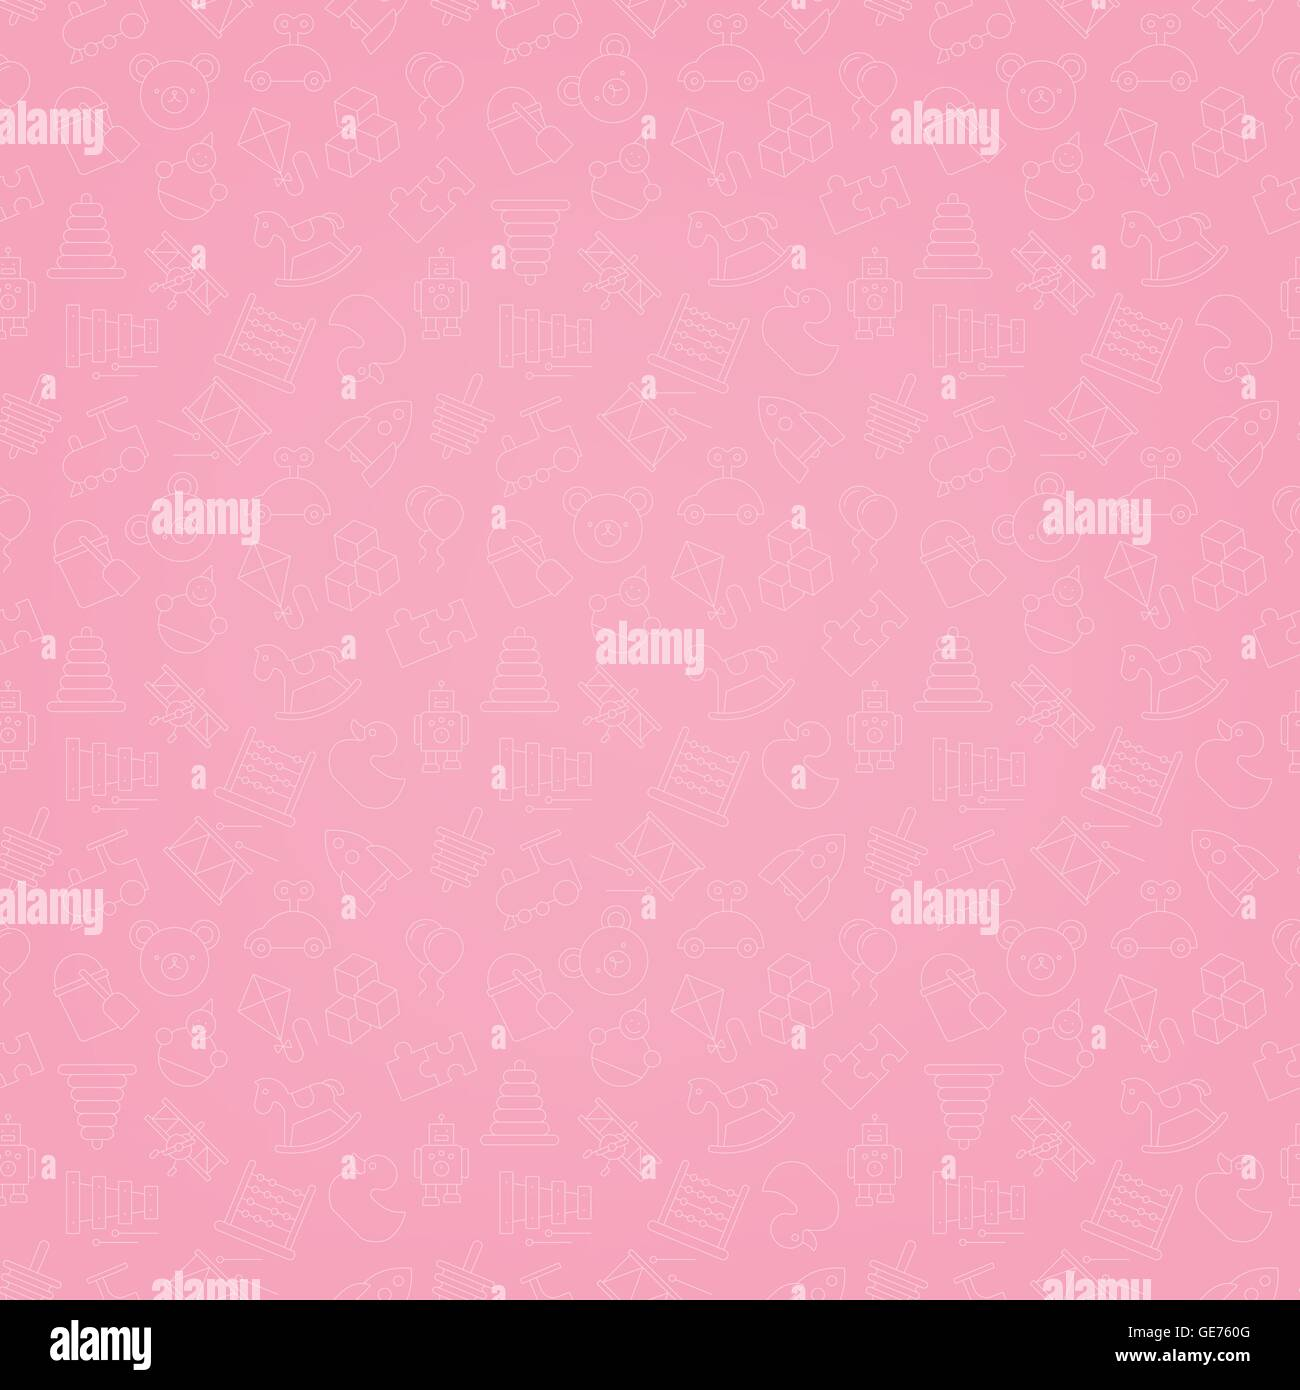 Motif de fond transparente rose de toys icons Photo Stock